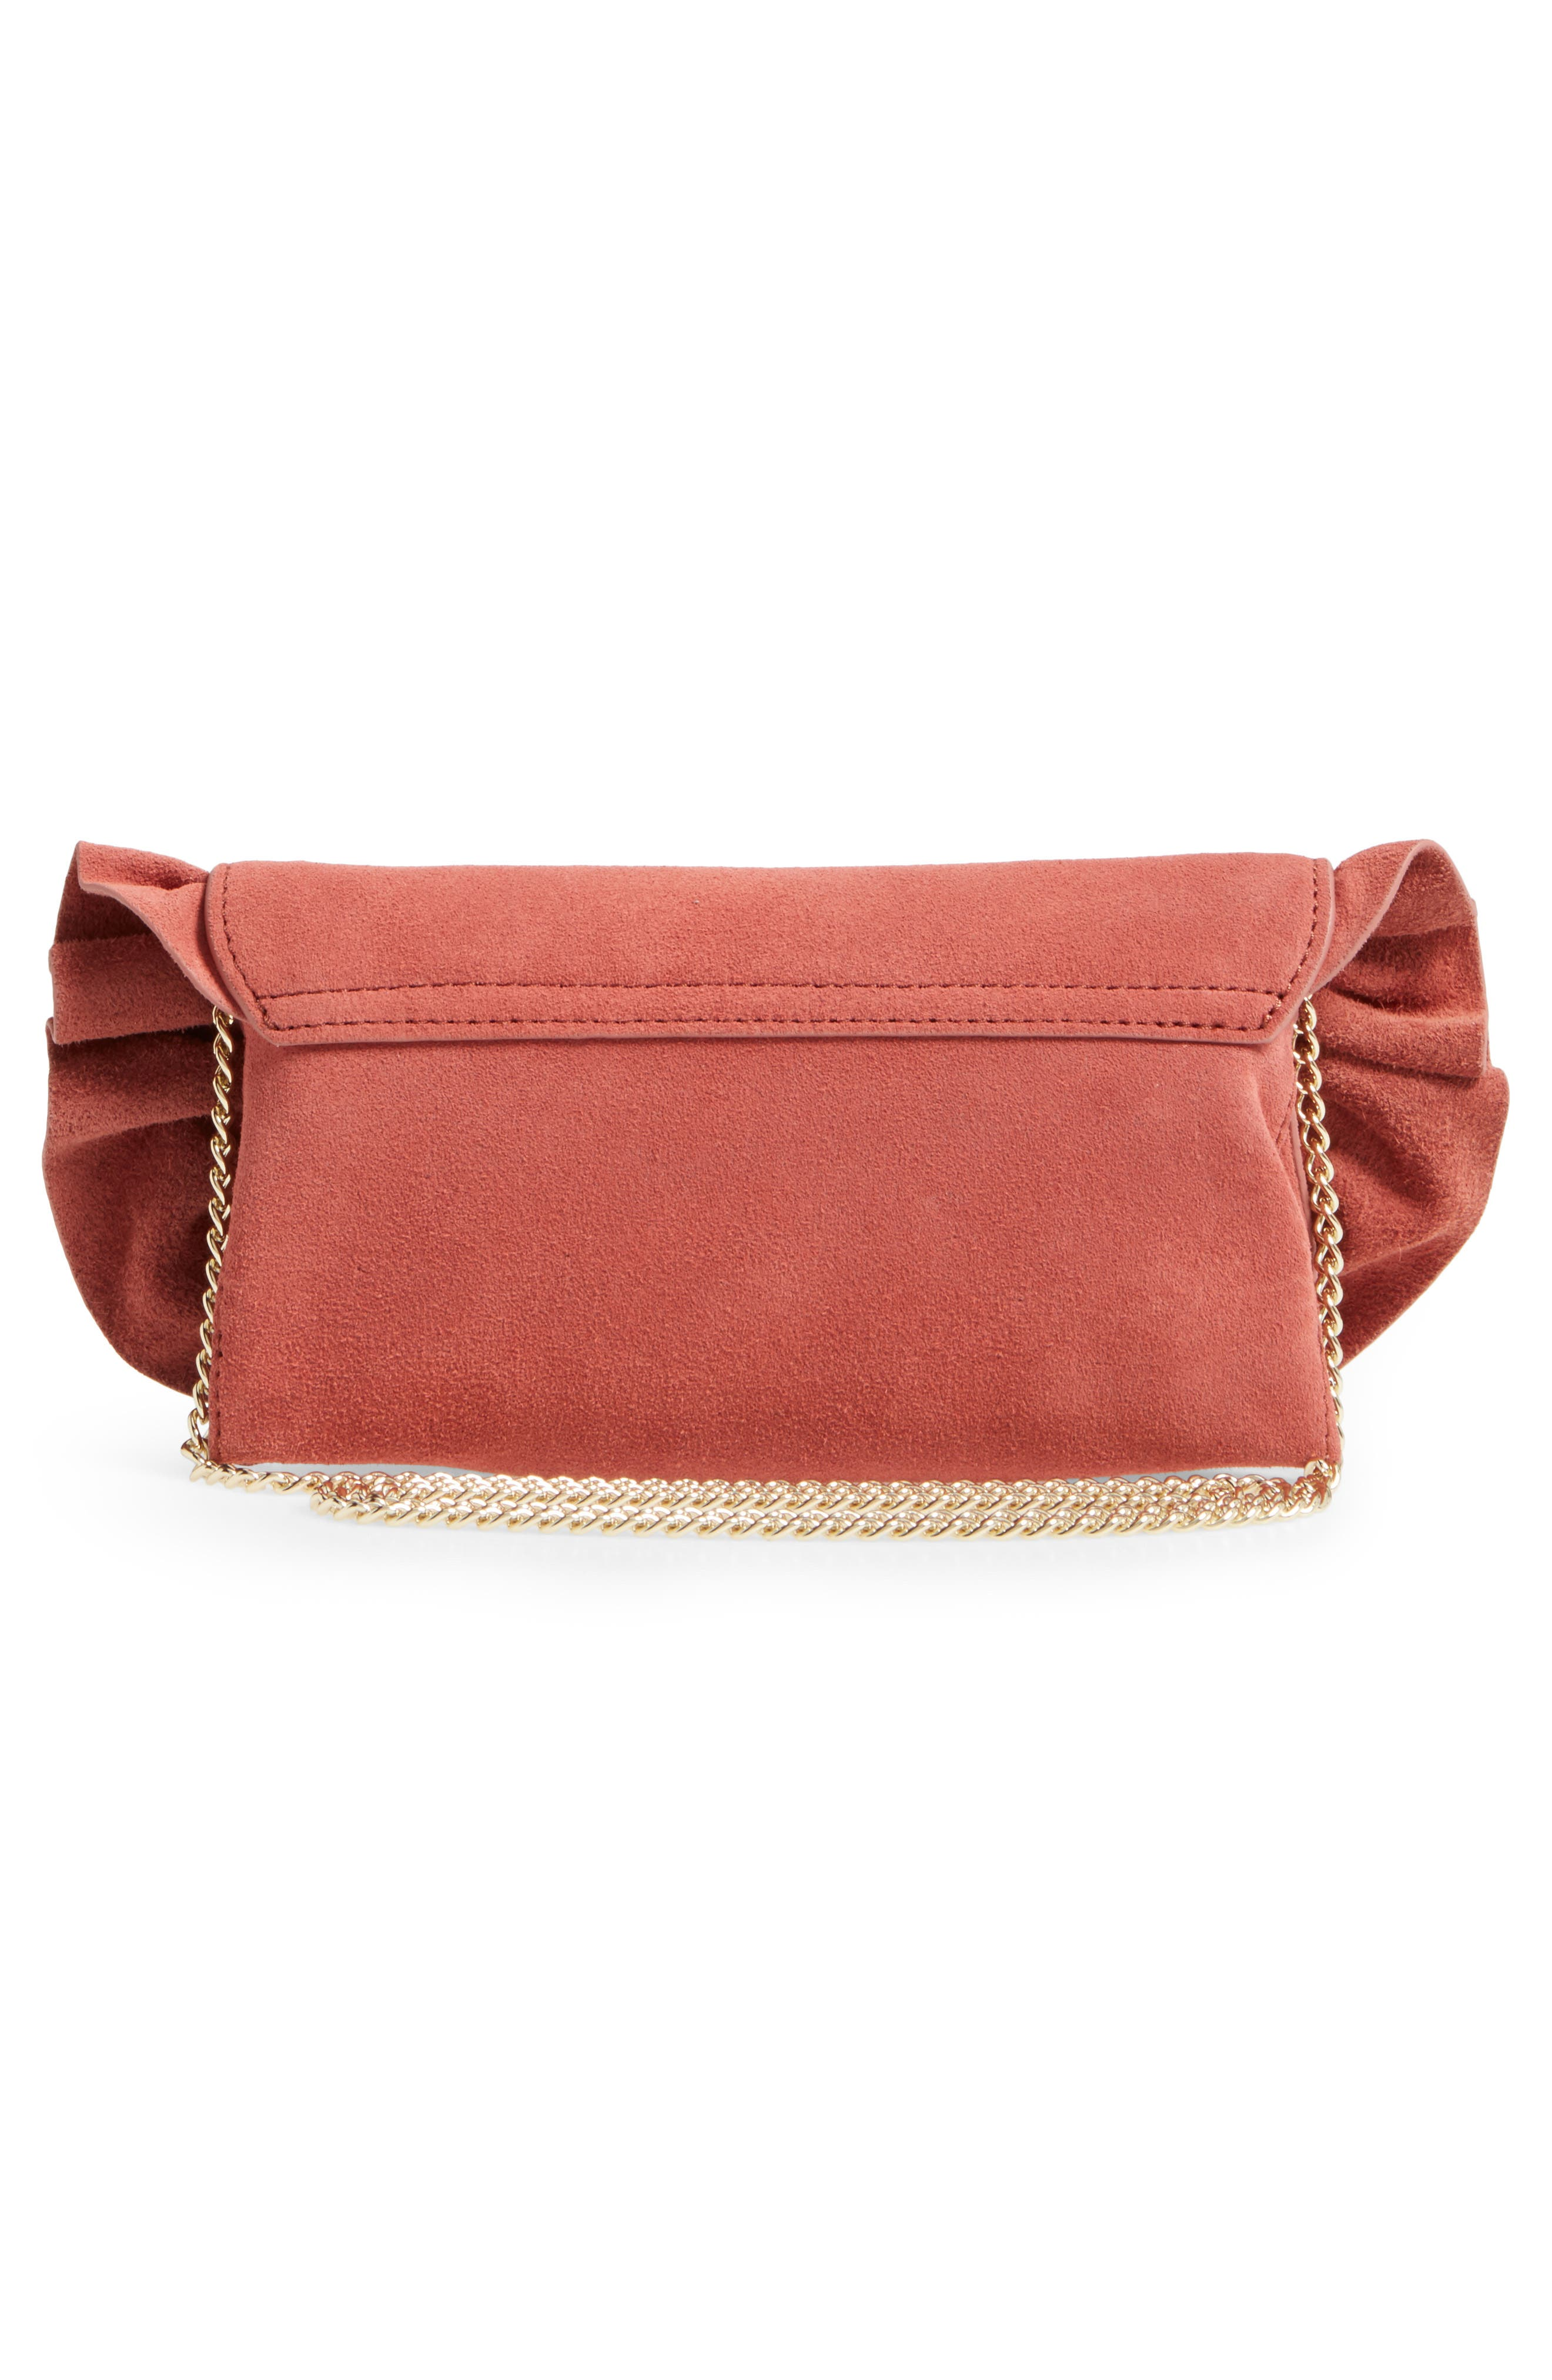 Ruffle Clutch,                             Alternate thumbnail 5, color,                             Dusty Rose